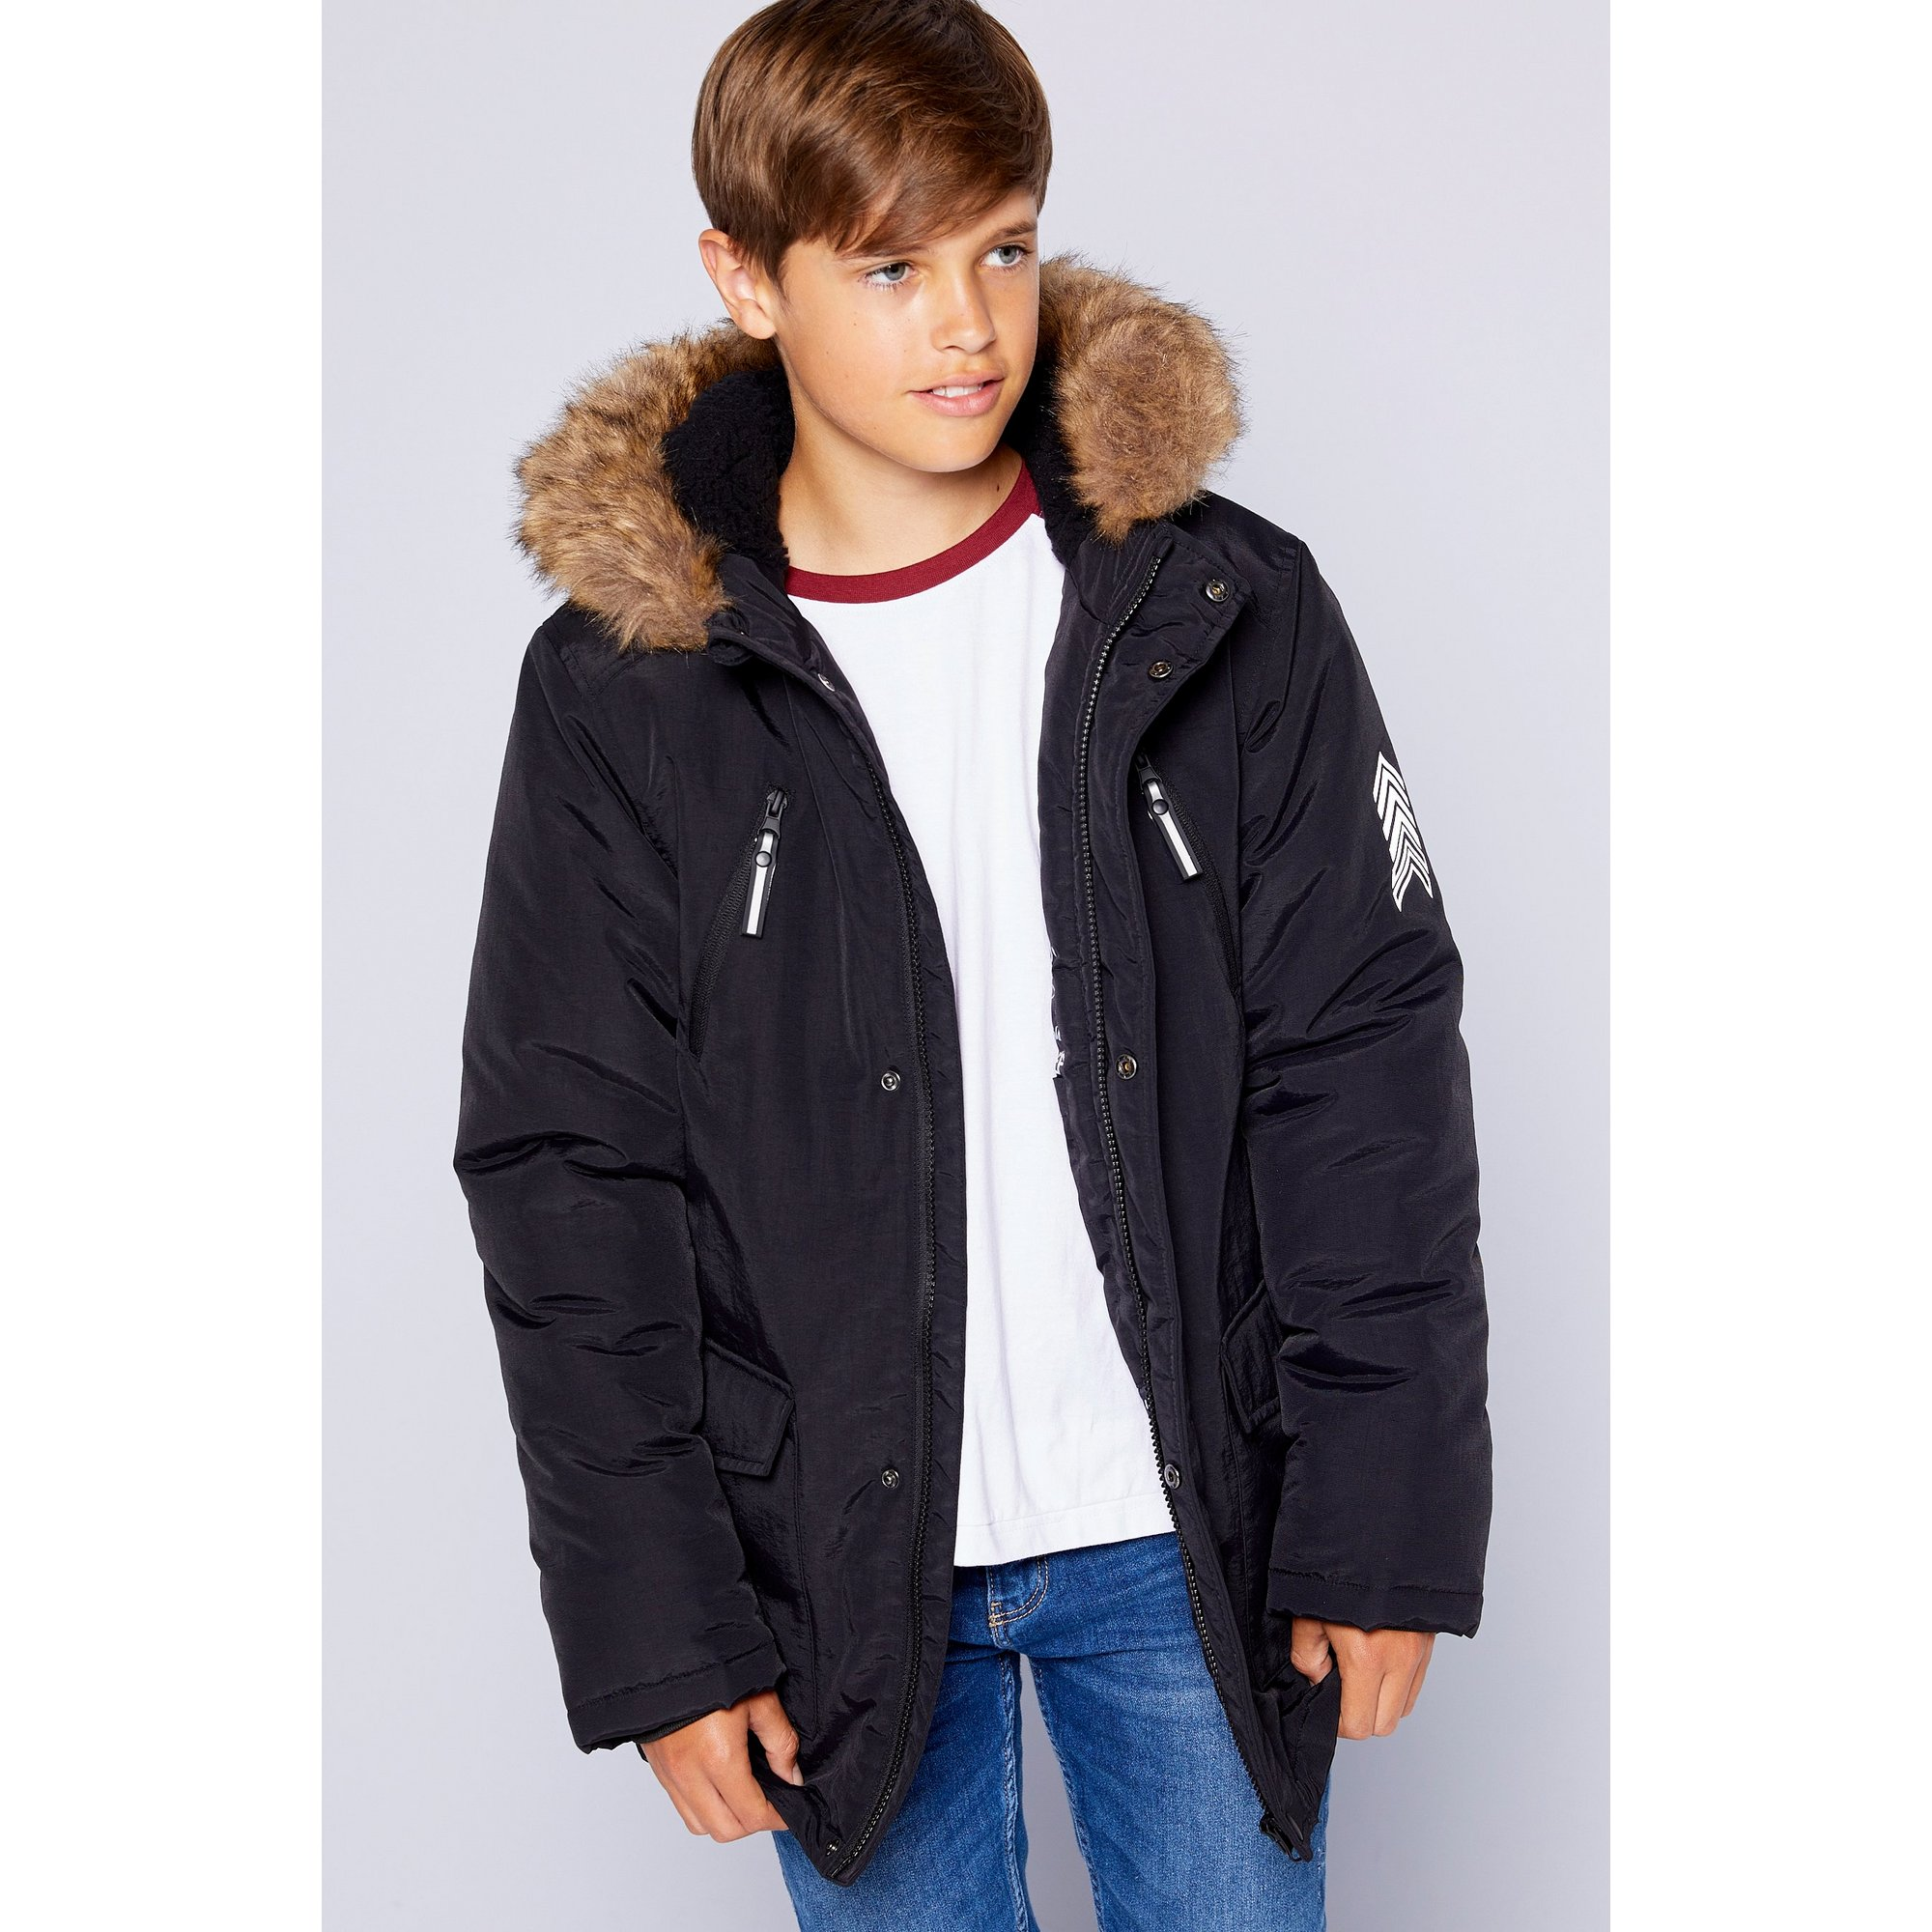 Image of Boys Borg Hooded Zip Front Parka